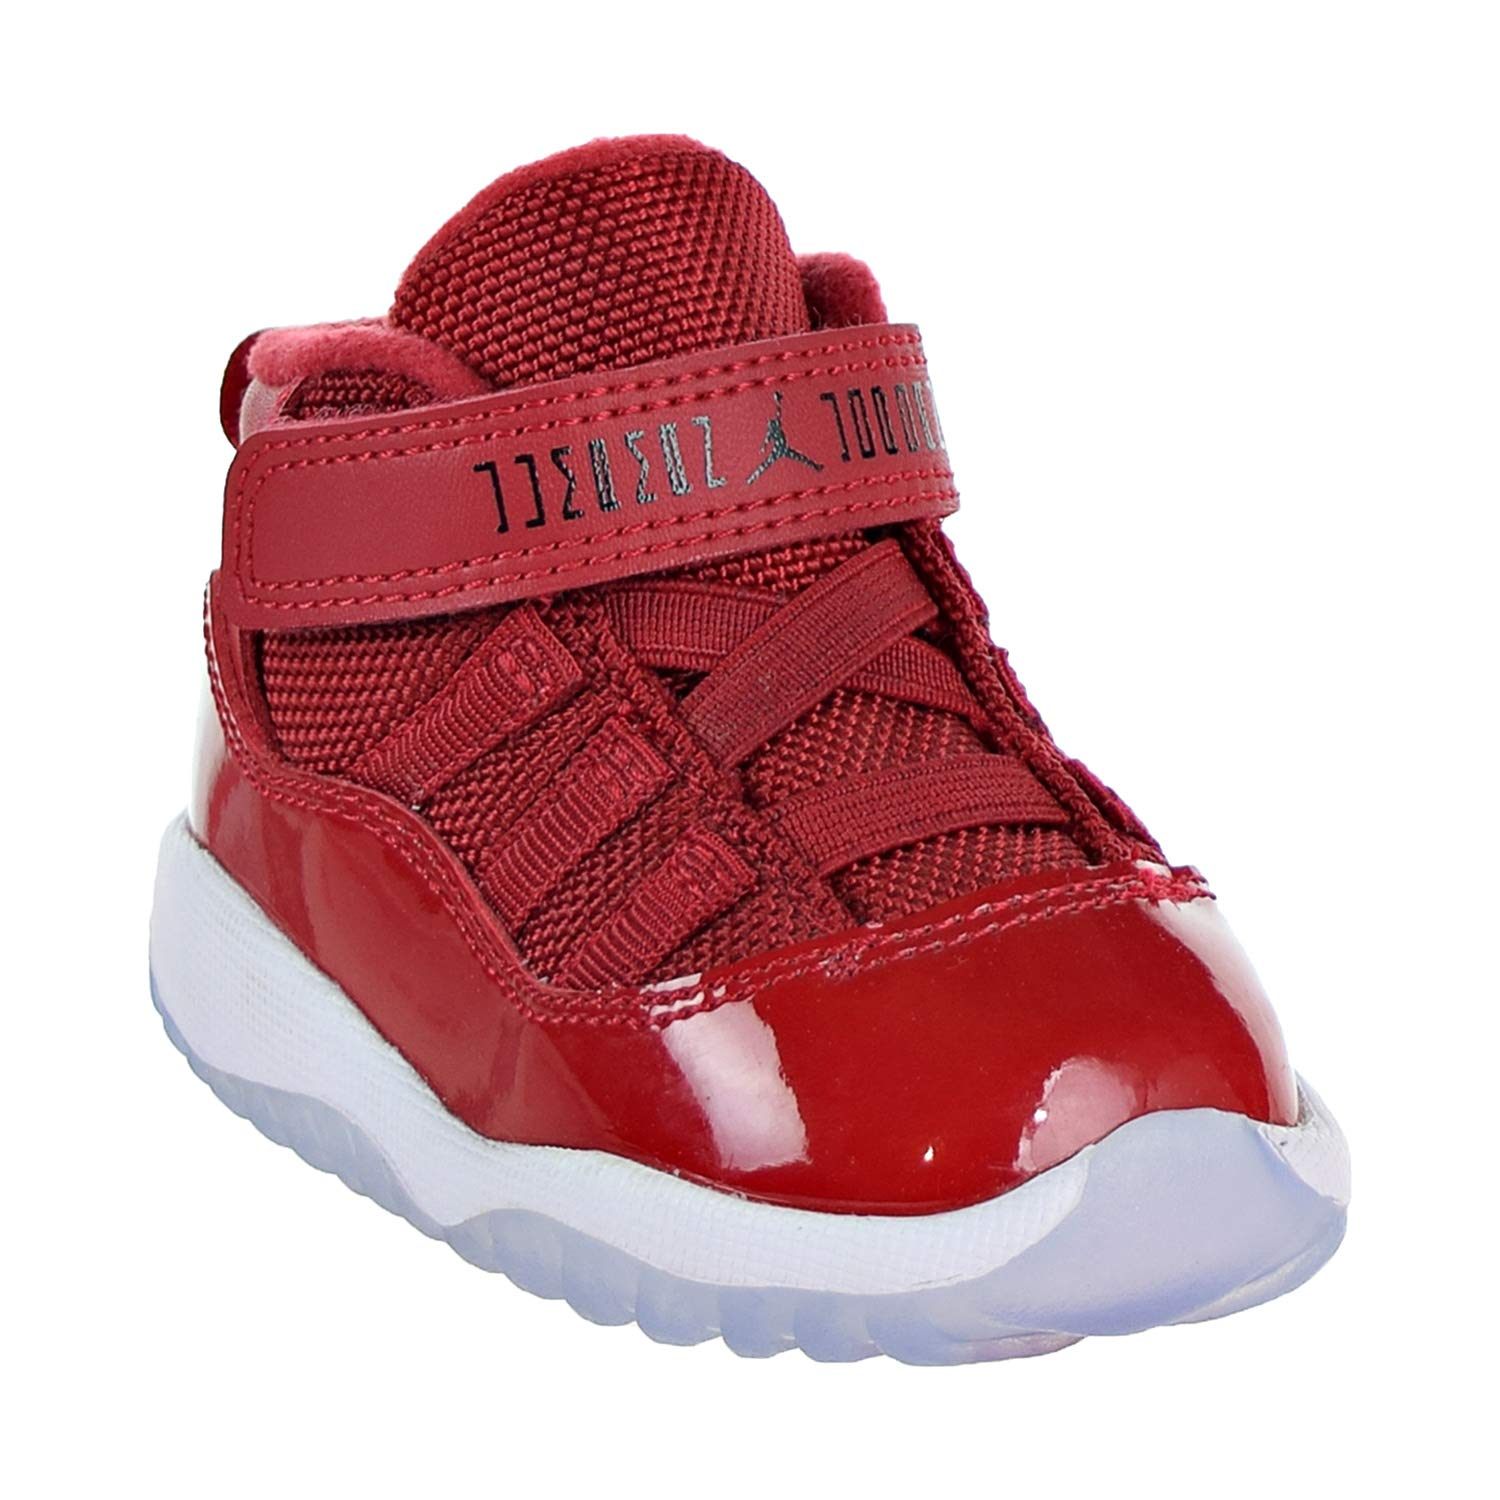 uk availability 58f69 4e8e6 NIKE Jordan 11 Retro BT Toddler's Shoes Gym Red/Black/White 378040-623